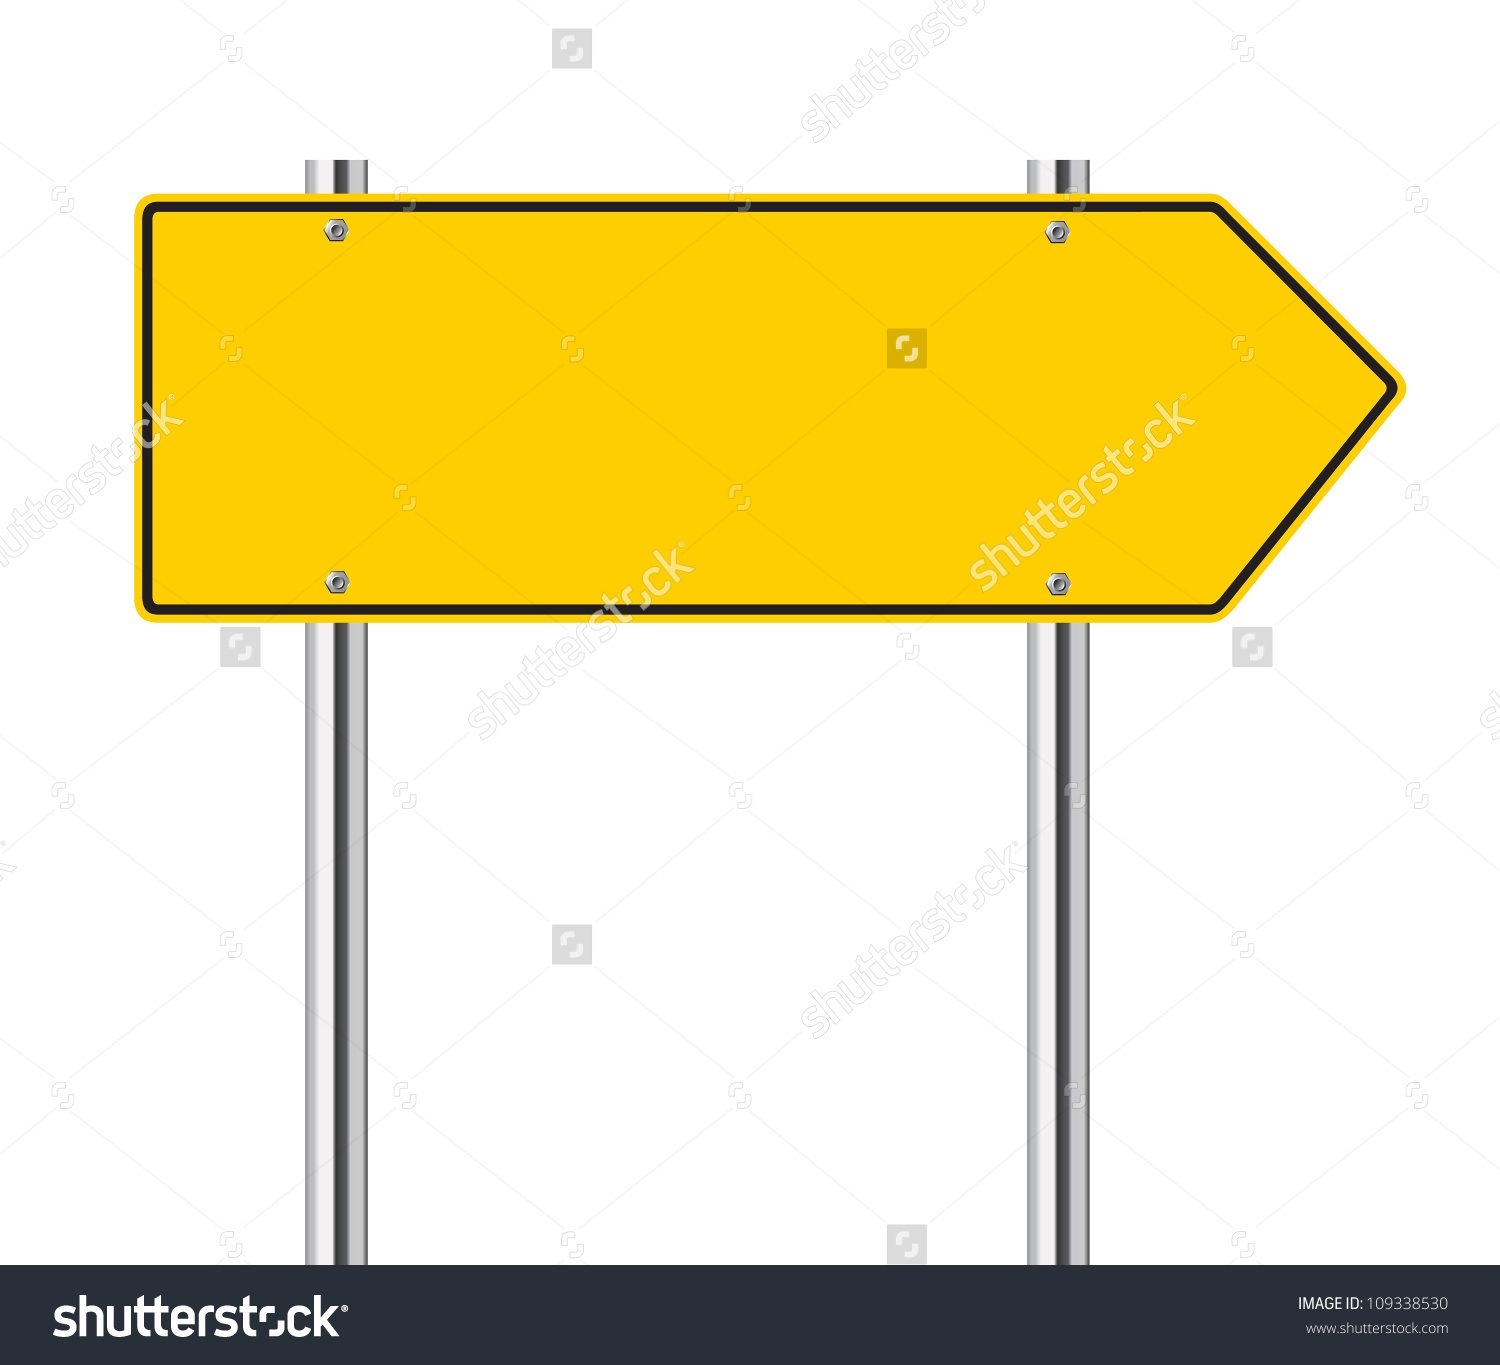 Road sign arrow clipart picture black and white library Road Sign Arrow Clipart - clipartsgram.com picture black and white library